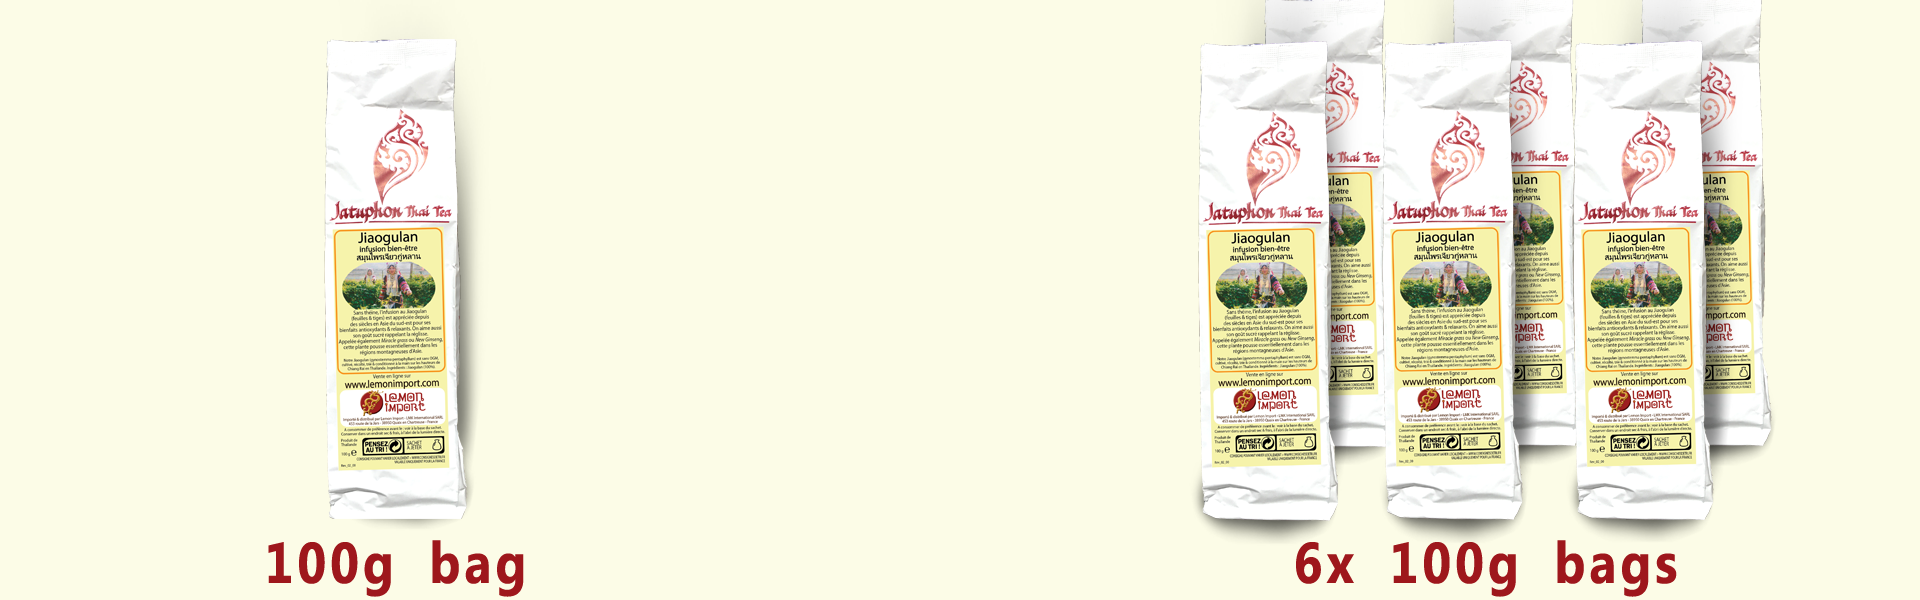 To choose the desired packaging size from the available formats, use the selector at the top of the page.